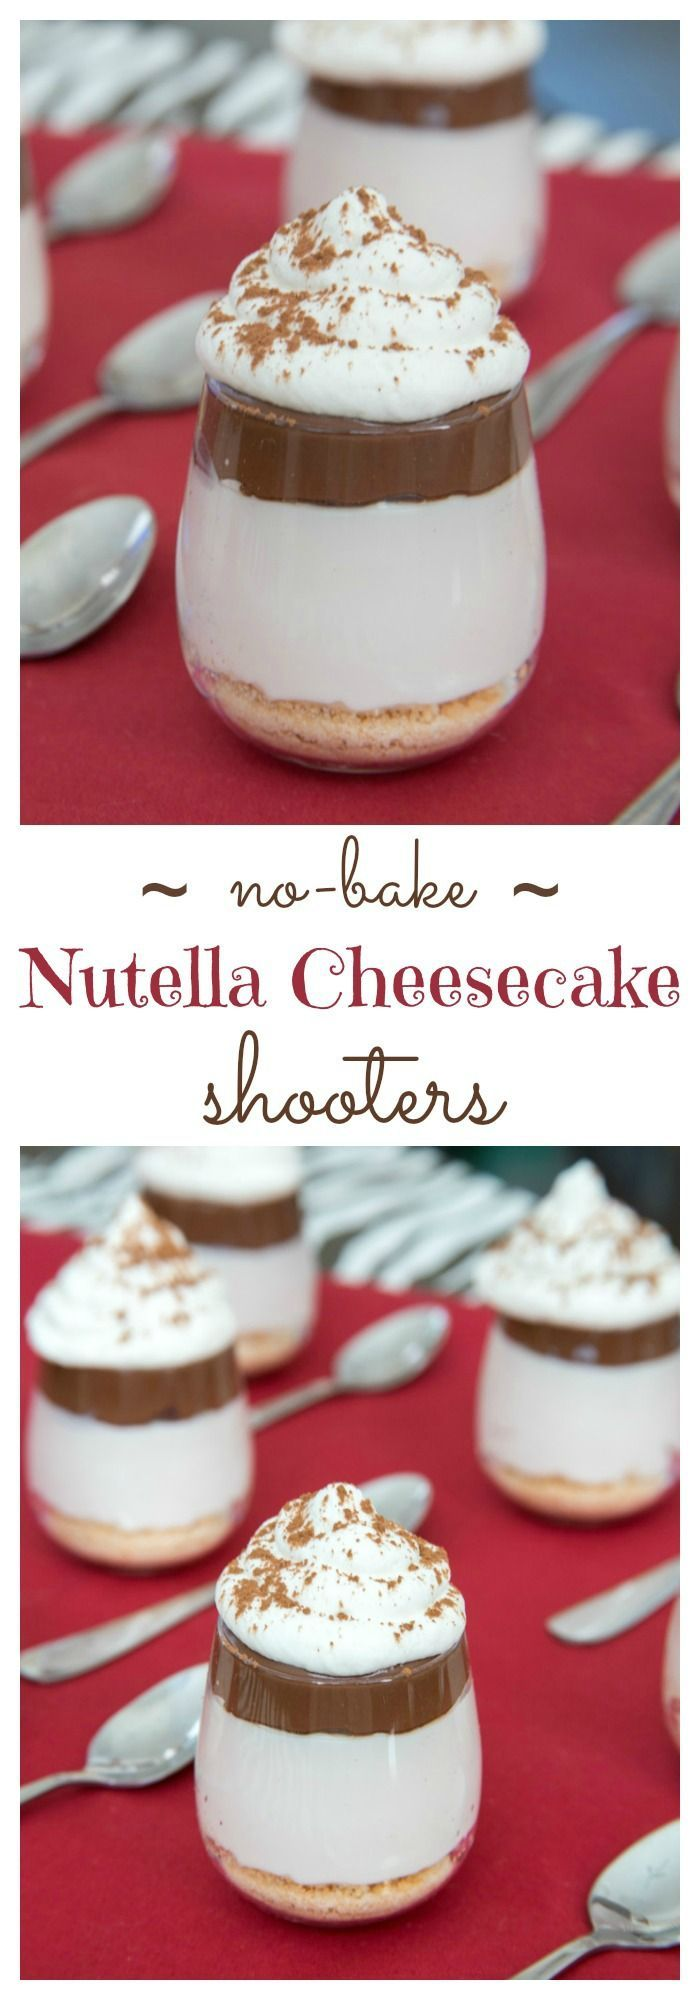 17+ best images about Newer RECIPES on Pinterest | Nutella ...